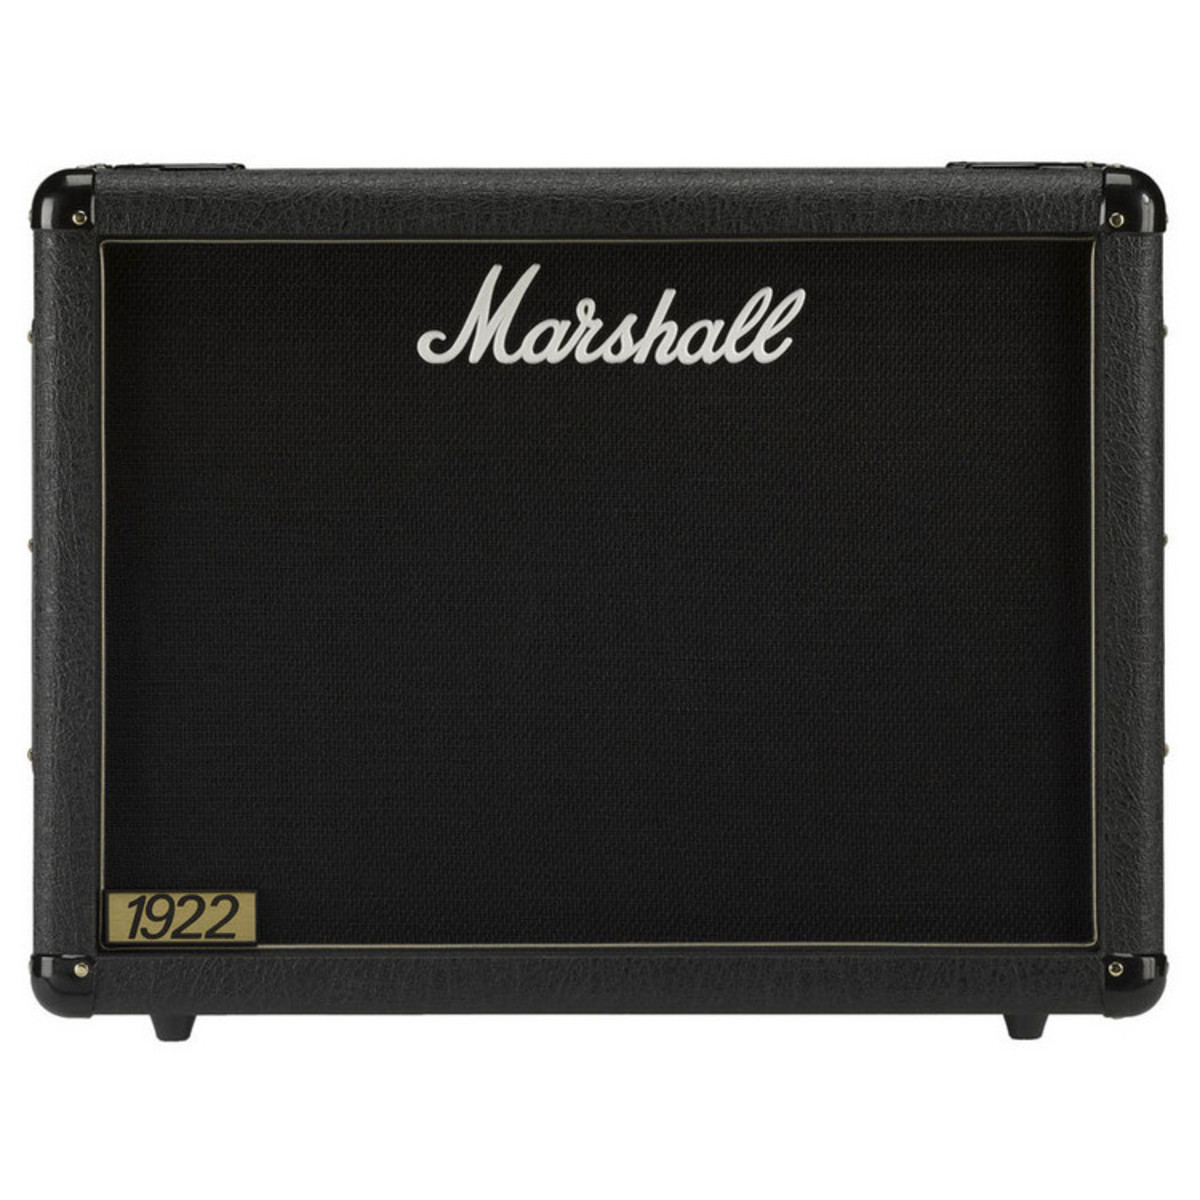 2x12 Bass Cabinet Marshall 1922 2x12 Guitar Speaker Cab At Gear4musiccom